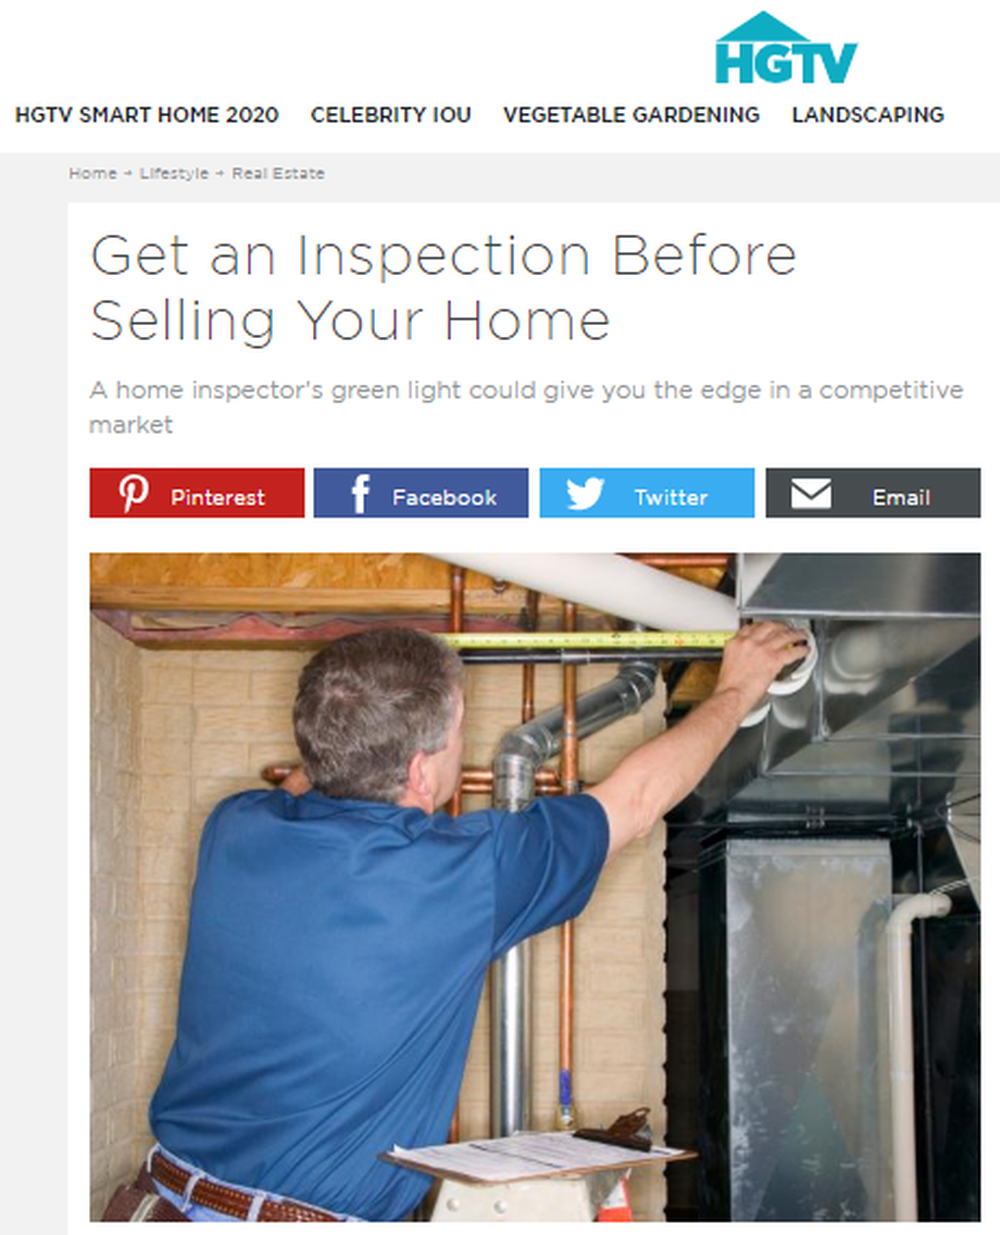 Get an Inspection Before Selling Your Home   HGTV (2).png